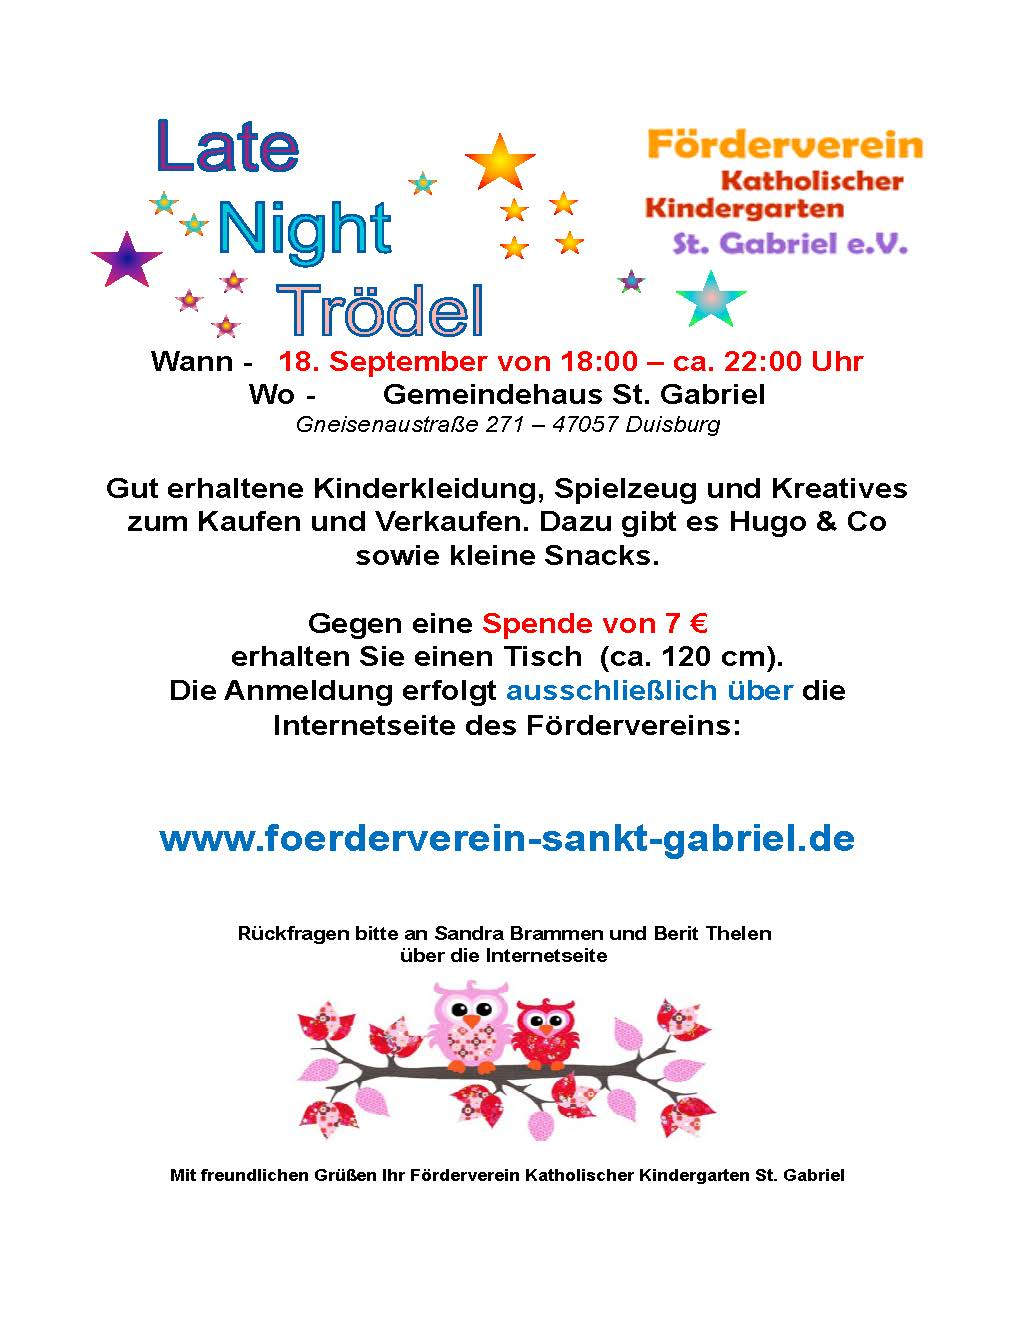 Flyer_LateNightTroedel_September